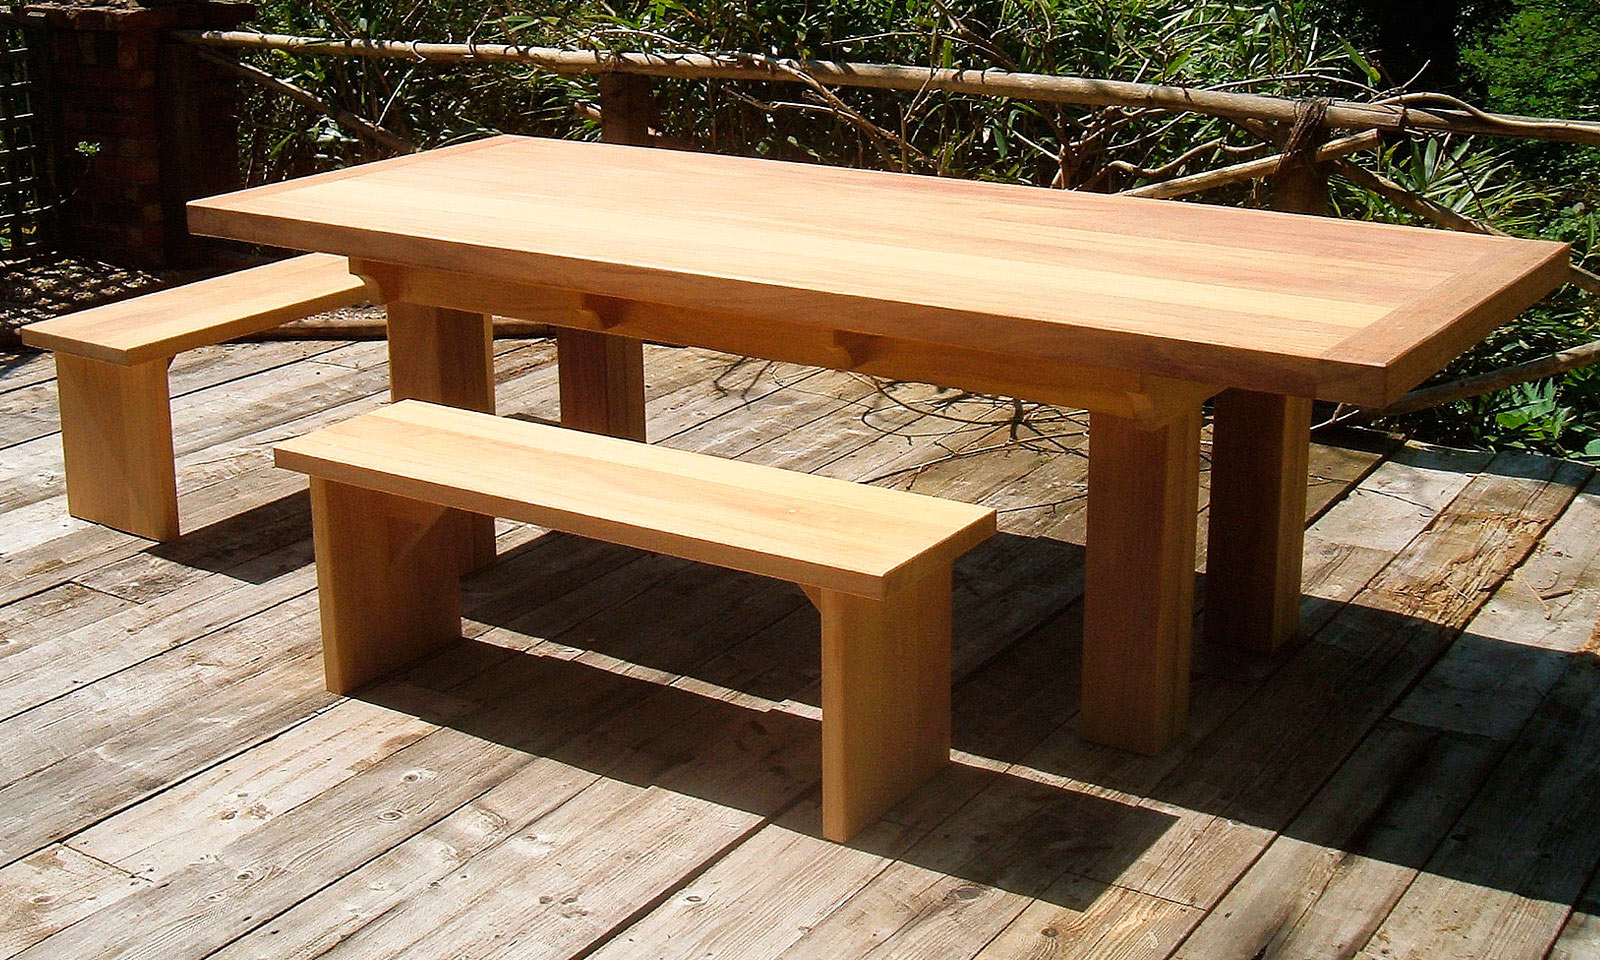 Iroko Table, with matching bench seats. A bespoke, handmade garden table manufactured out of Iroko hardwood. Quality hand-crafted exterior furniture designed and built by Mounts Hill.